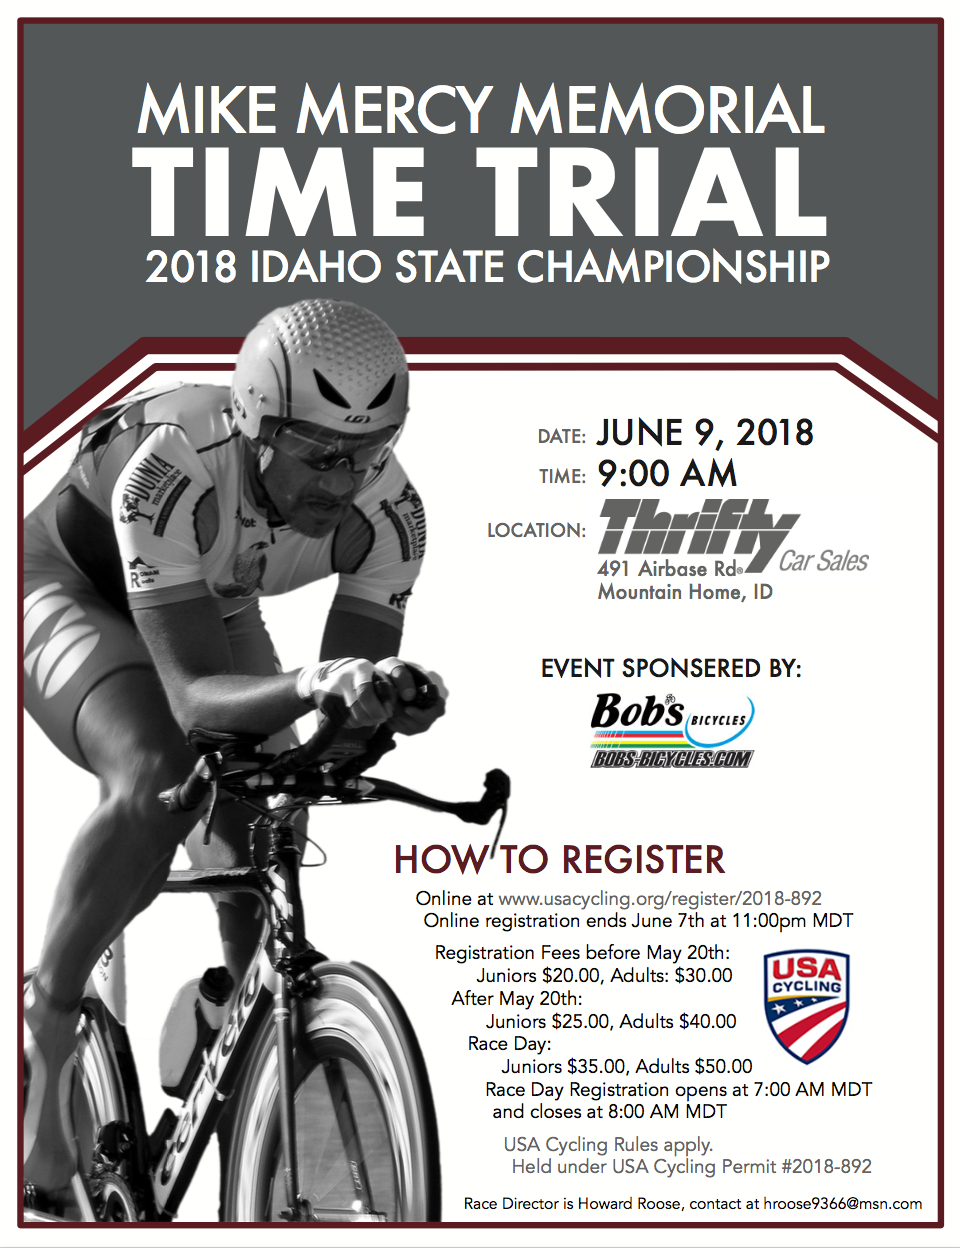 Mike Mercy Memorial Time Trial - Idaho State Championship